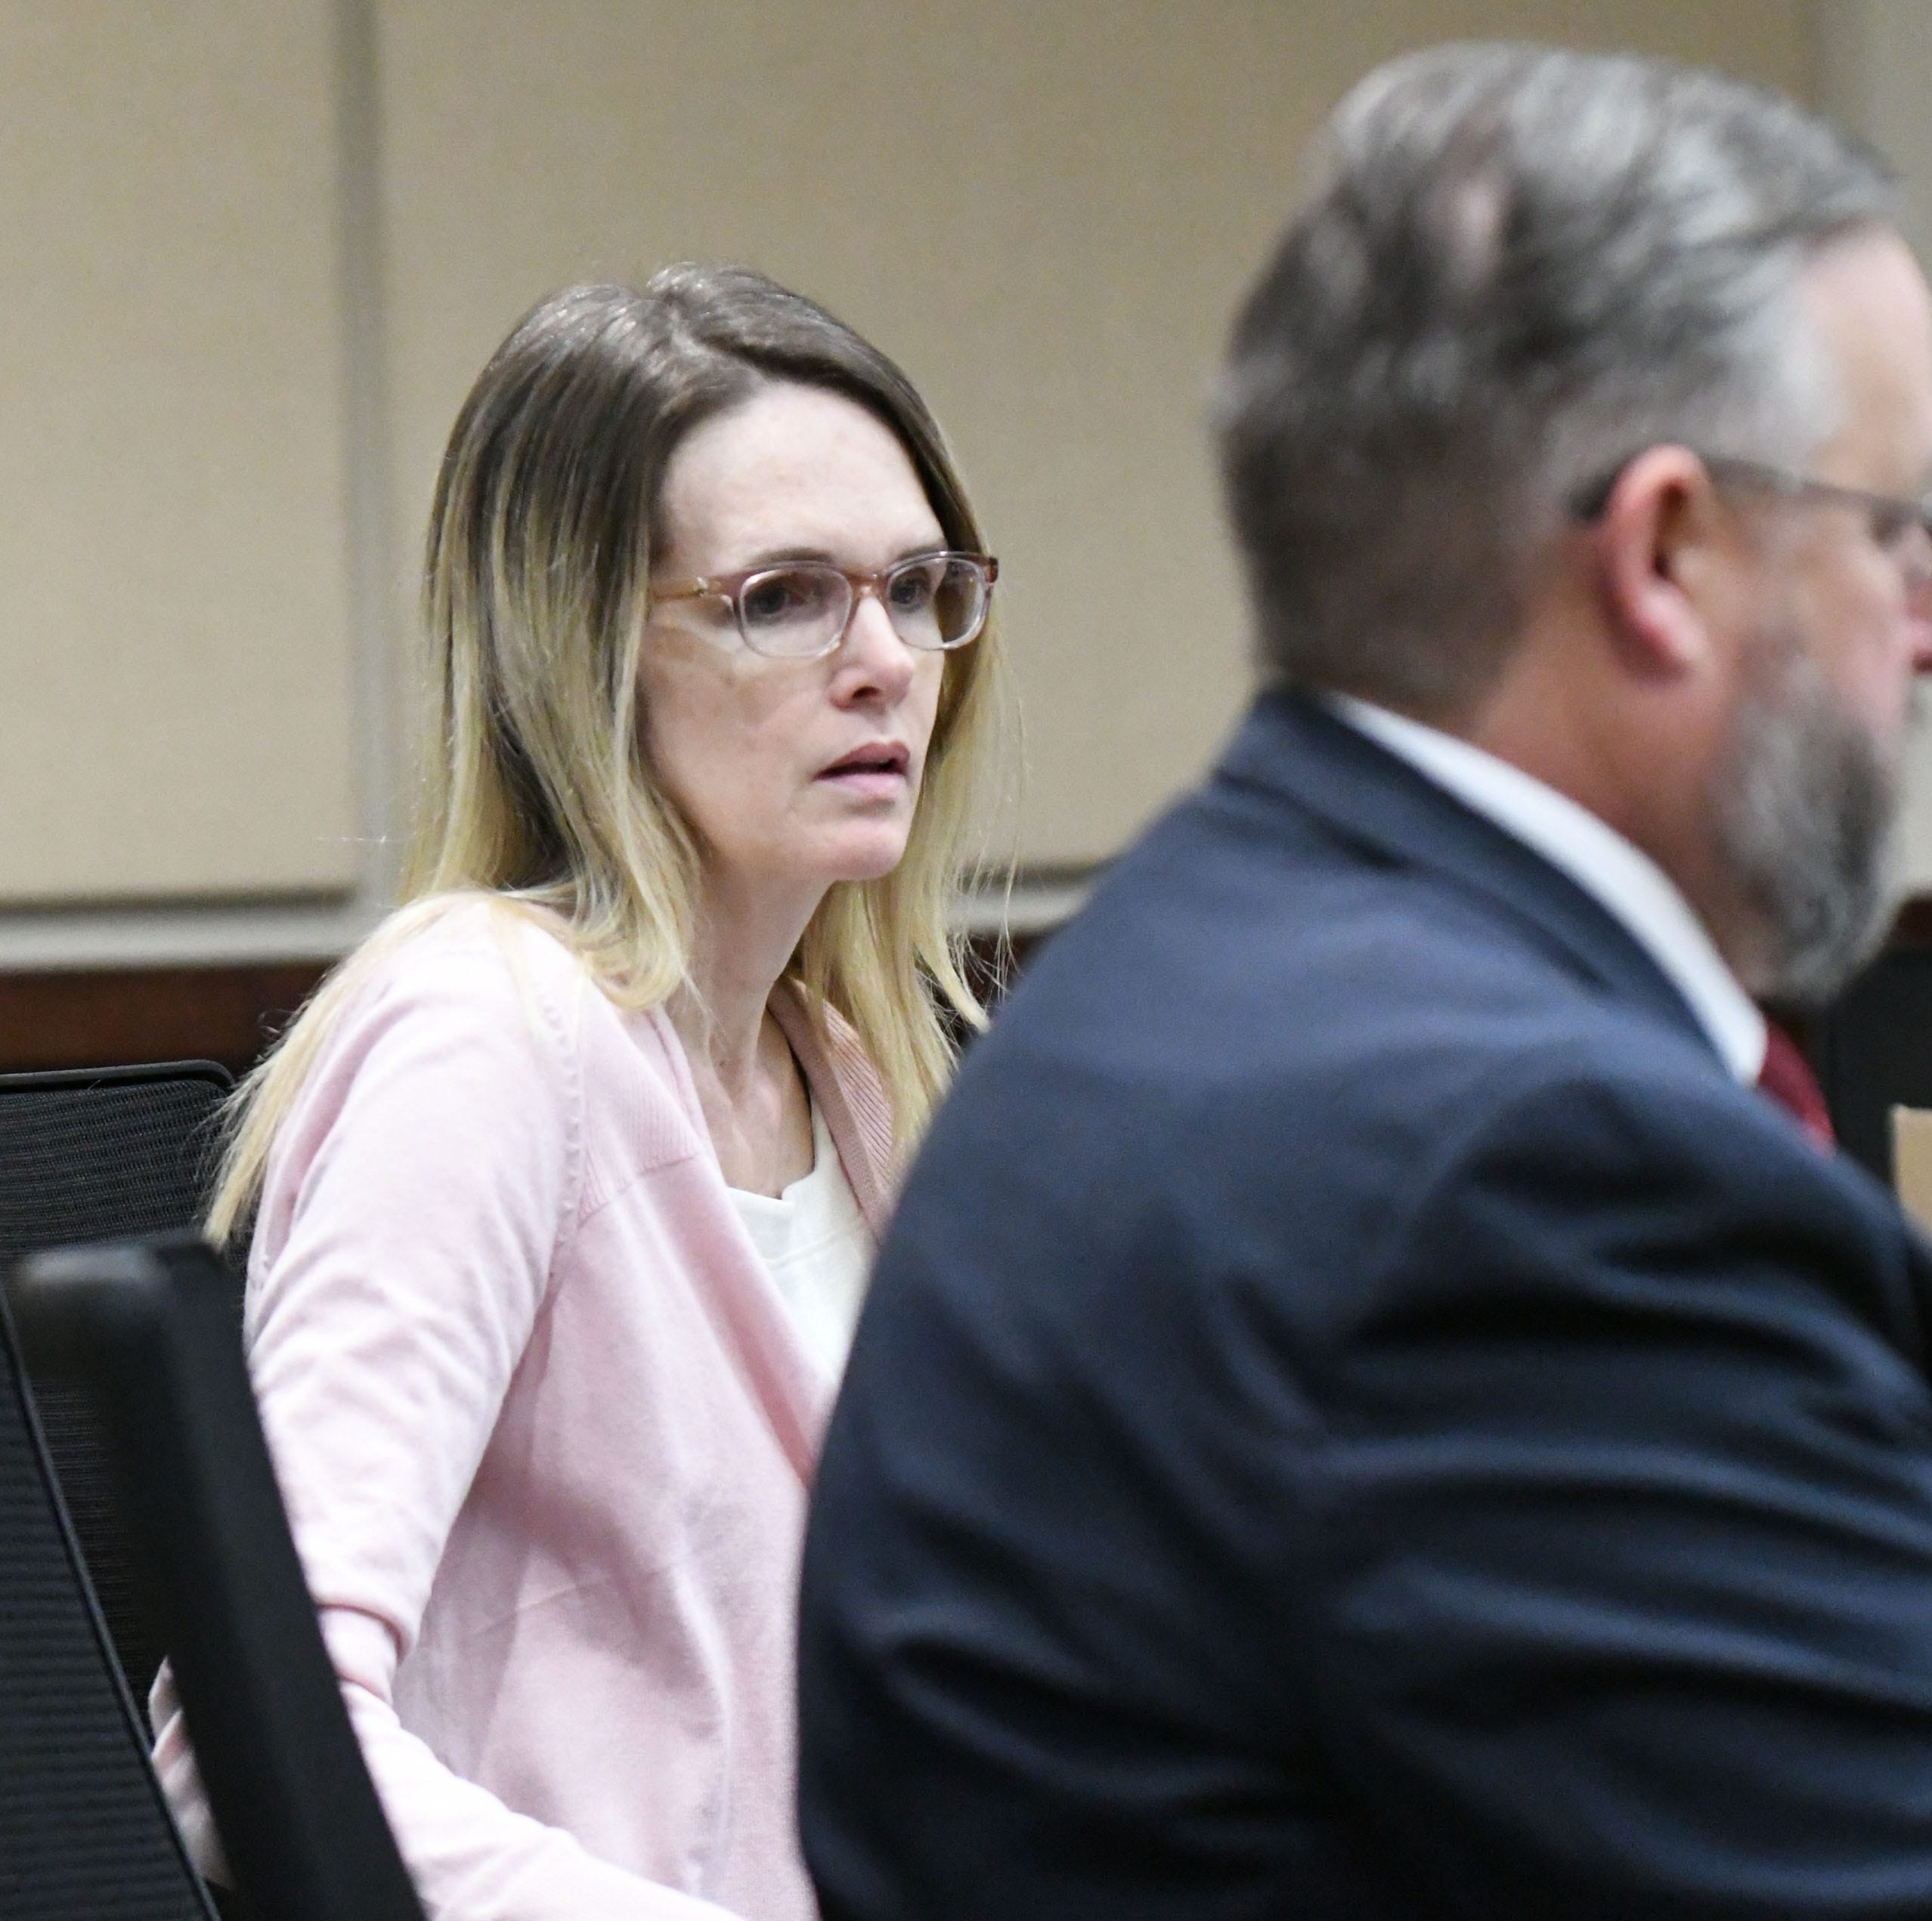 Denise Williams murder trial: Defense opener: 'Mr. Winchester has a motive to lie to you'